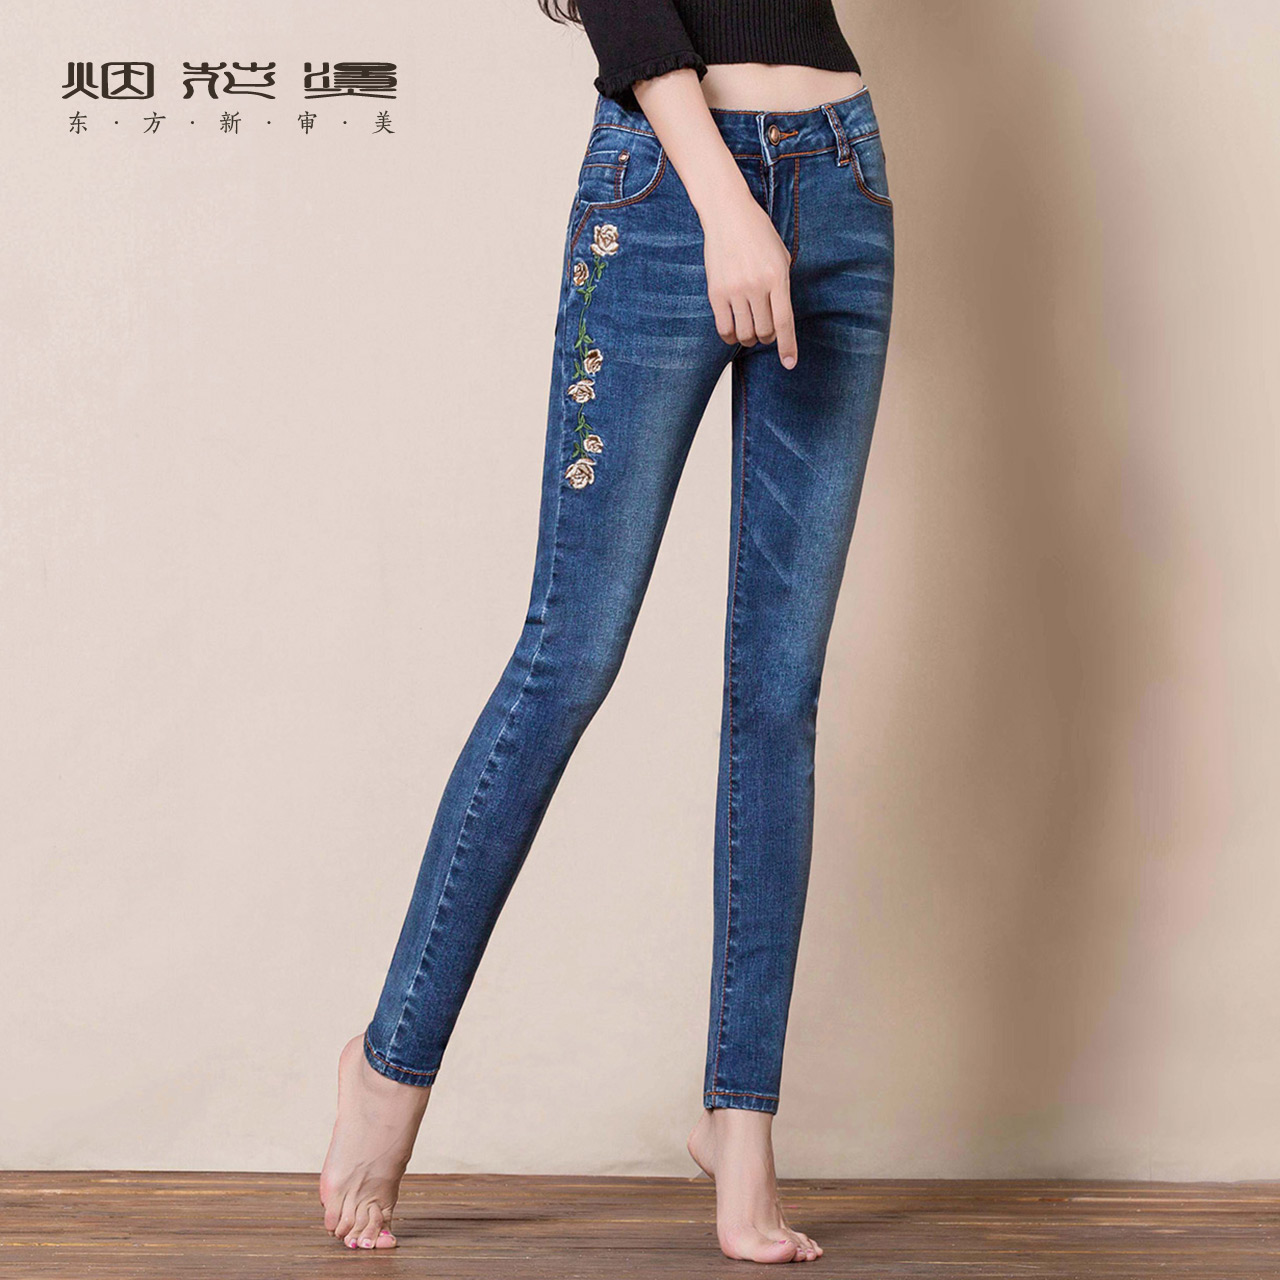 Fireworks hot 2019 summer new pants female fashion embroidery stretch casual pencil feet pants jeans Lotus embroidery